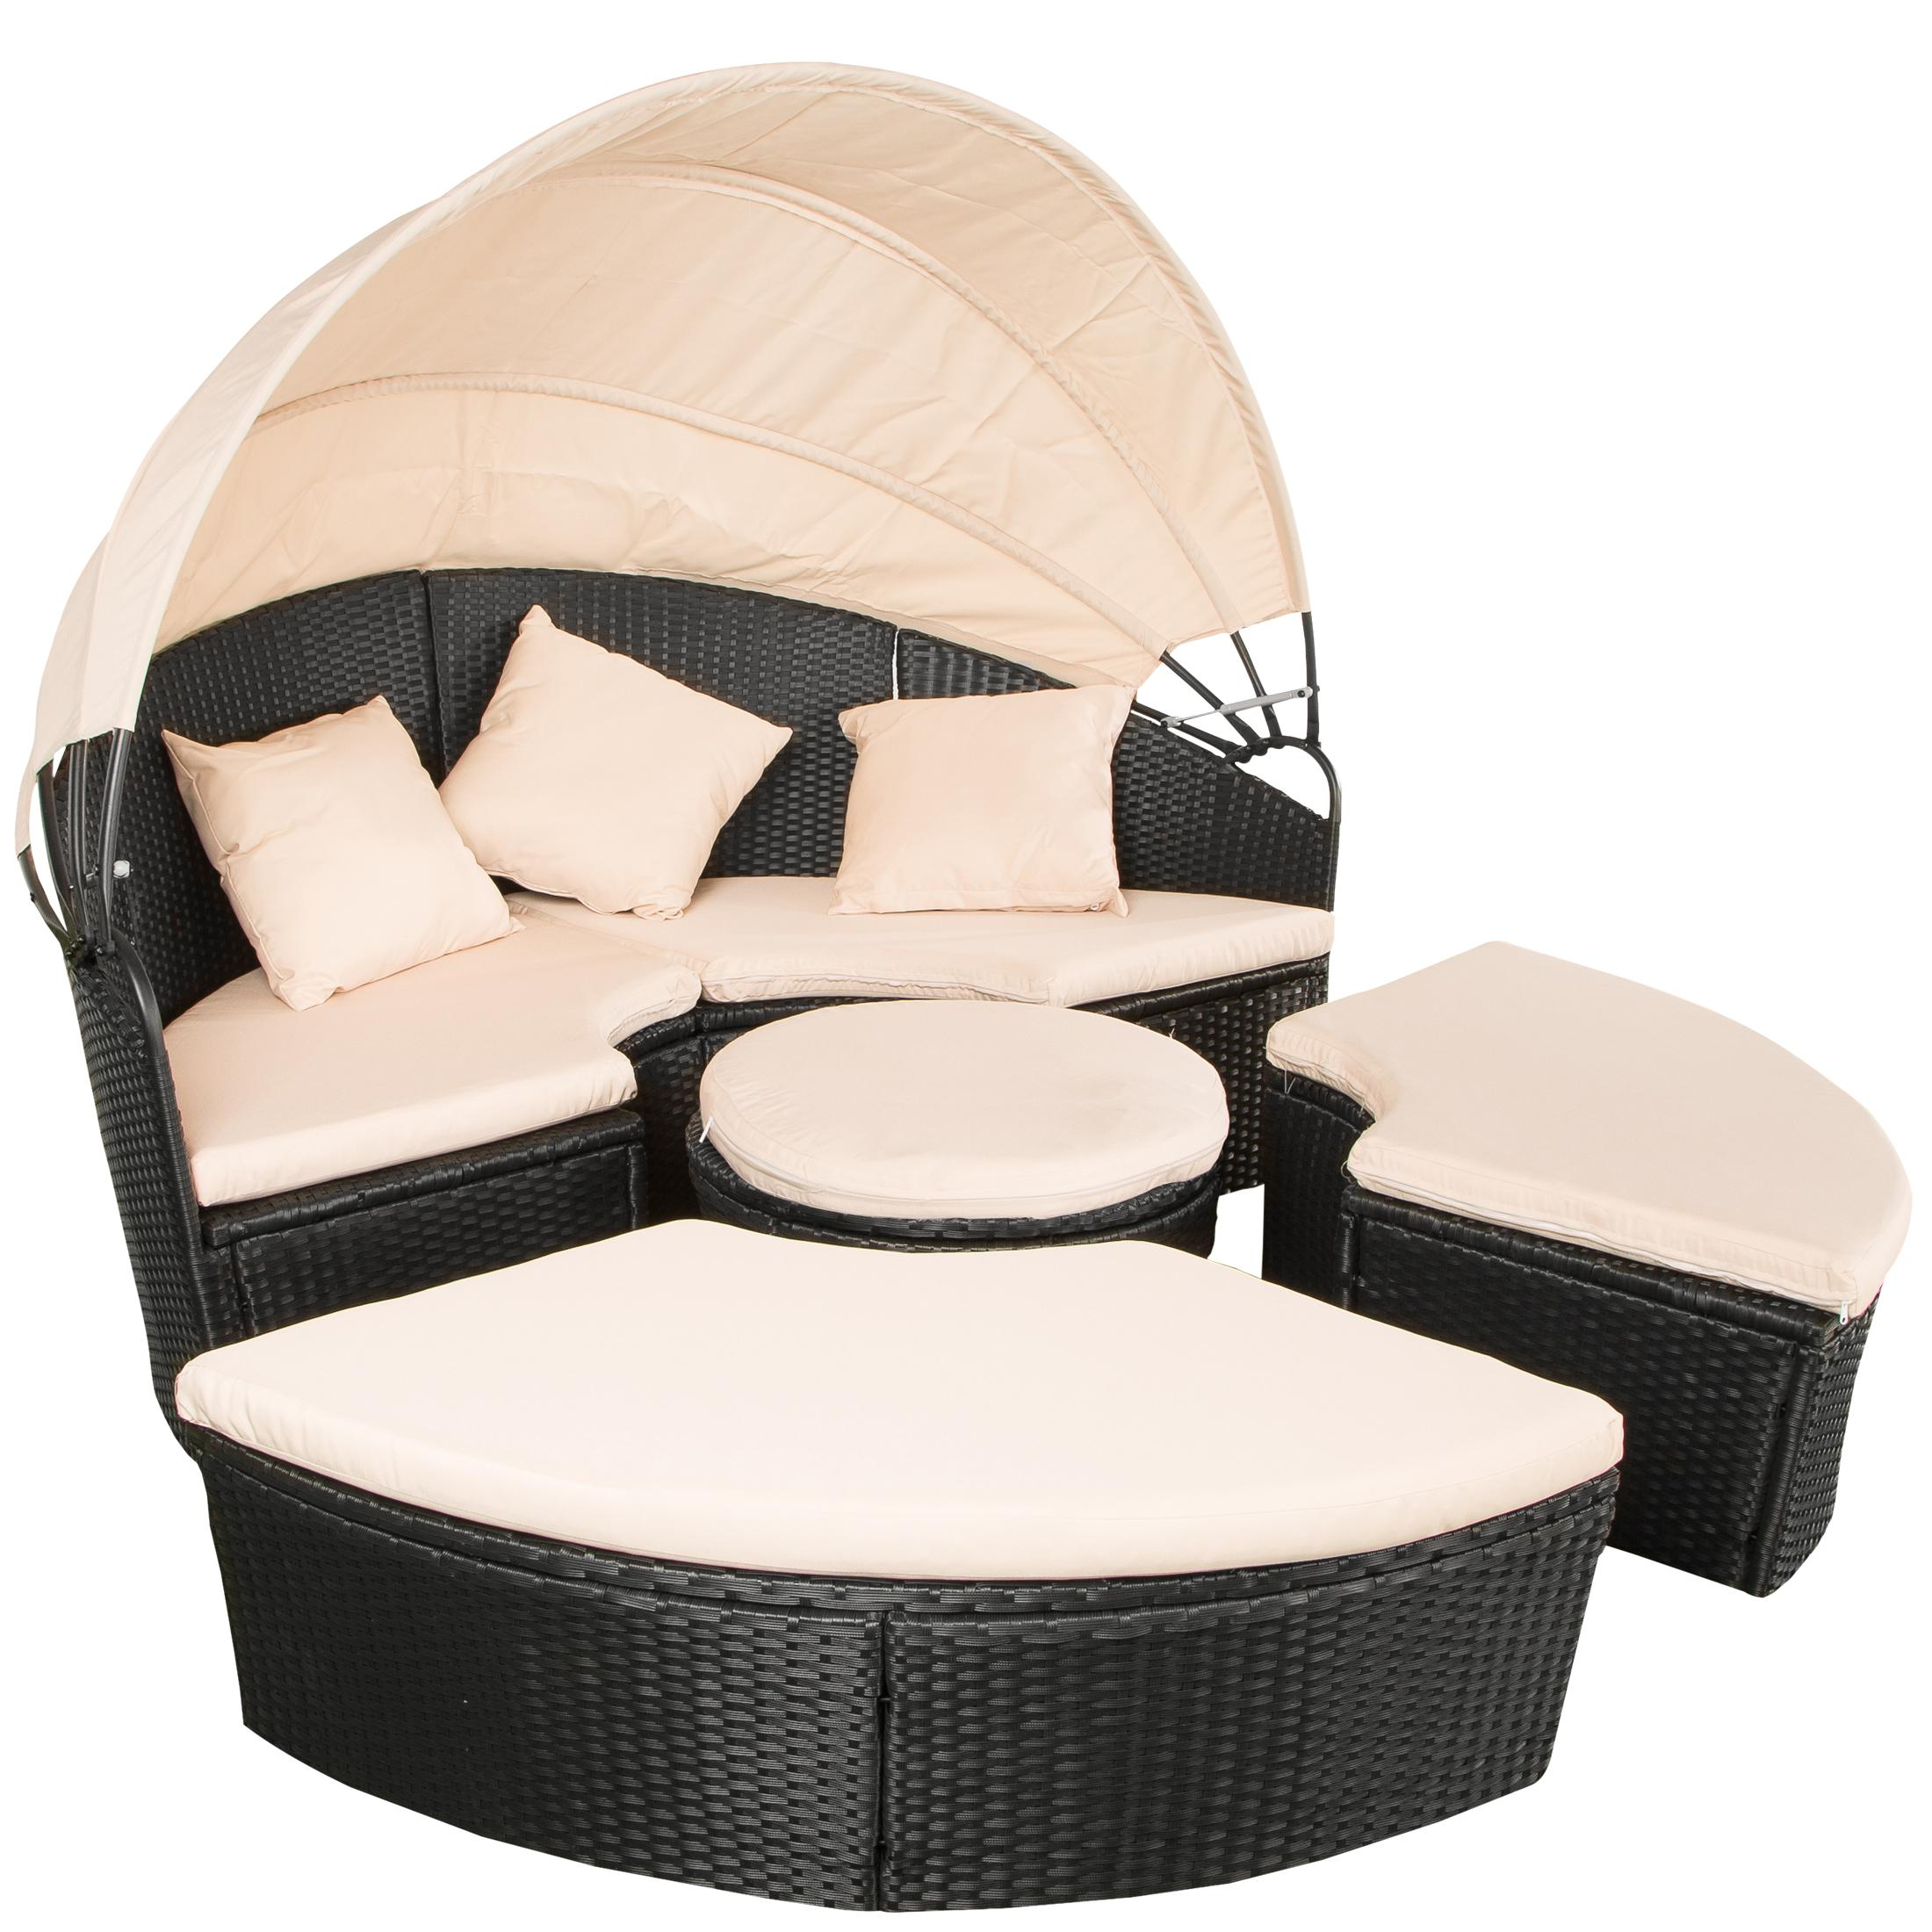 ultranatura polyrattan palma series round sun lounger with foldable canopy incl cushioning. Black Bedroom Furniture Sets. Home Design Ideas